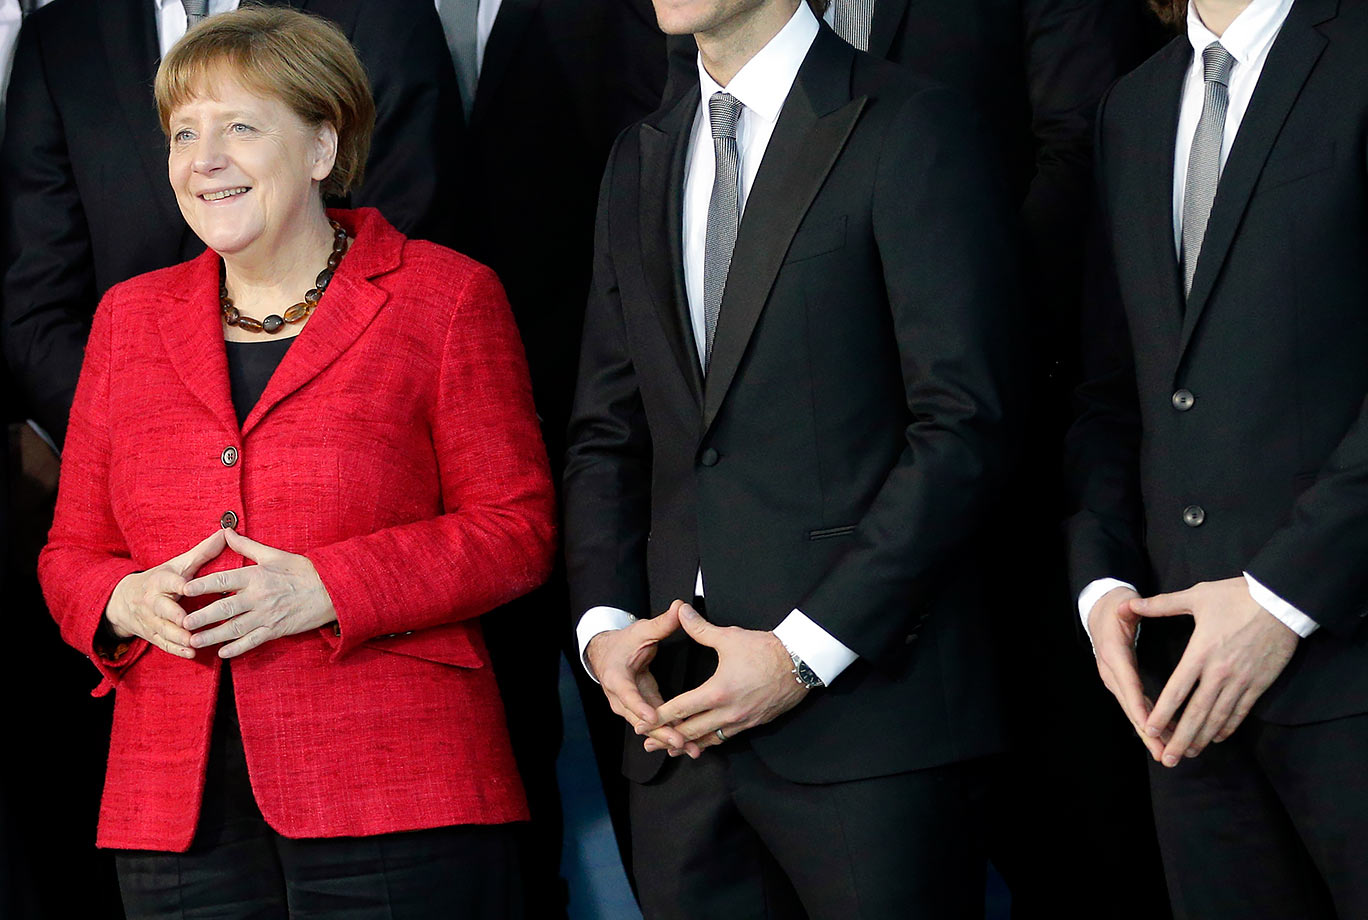 German Chancellor Angela Merkel poses with the National Handball team at the chancellery in Berlin, Germany.